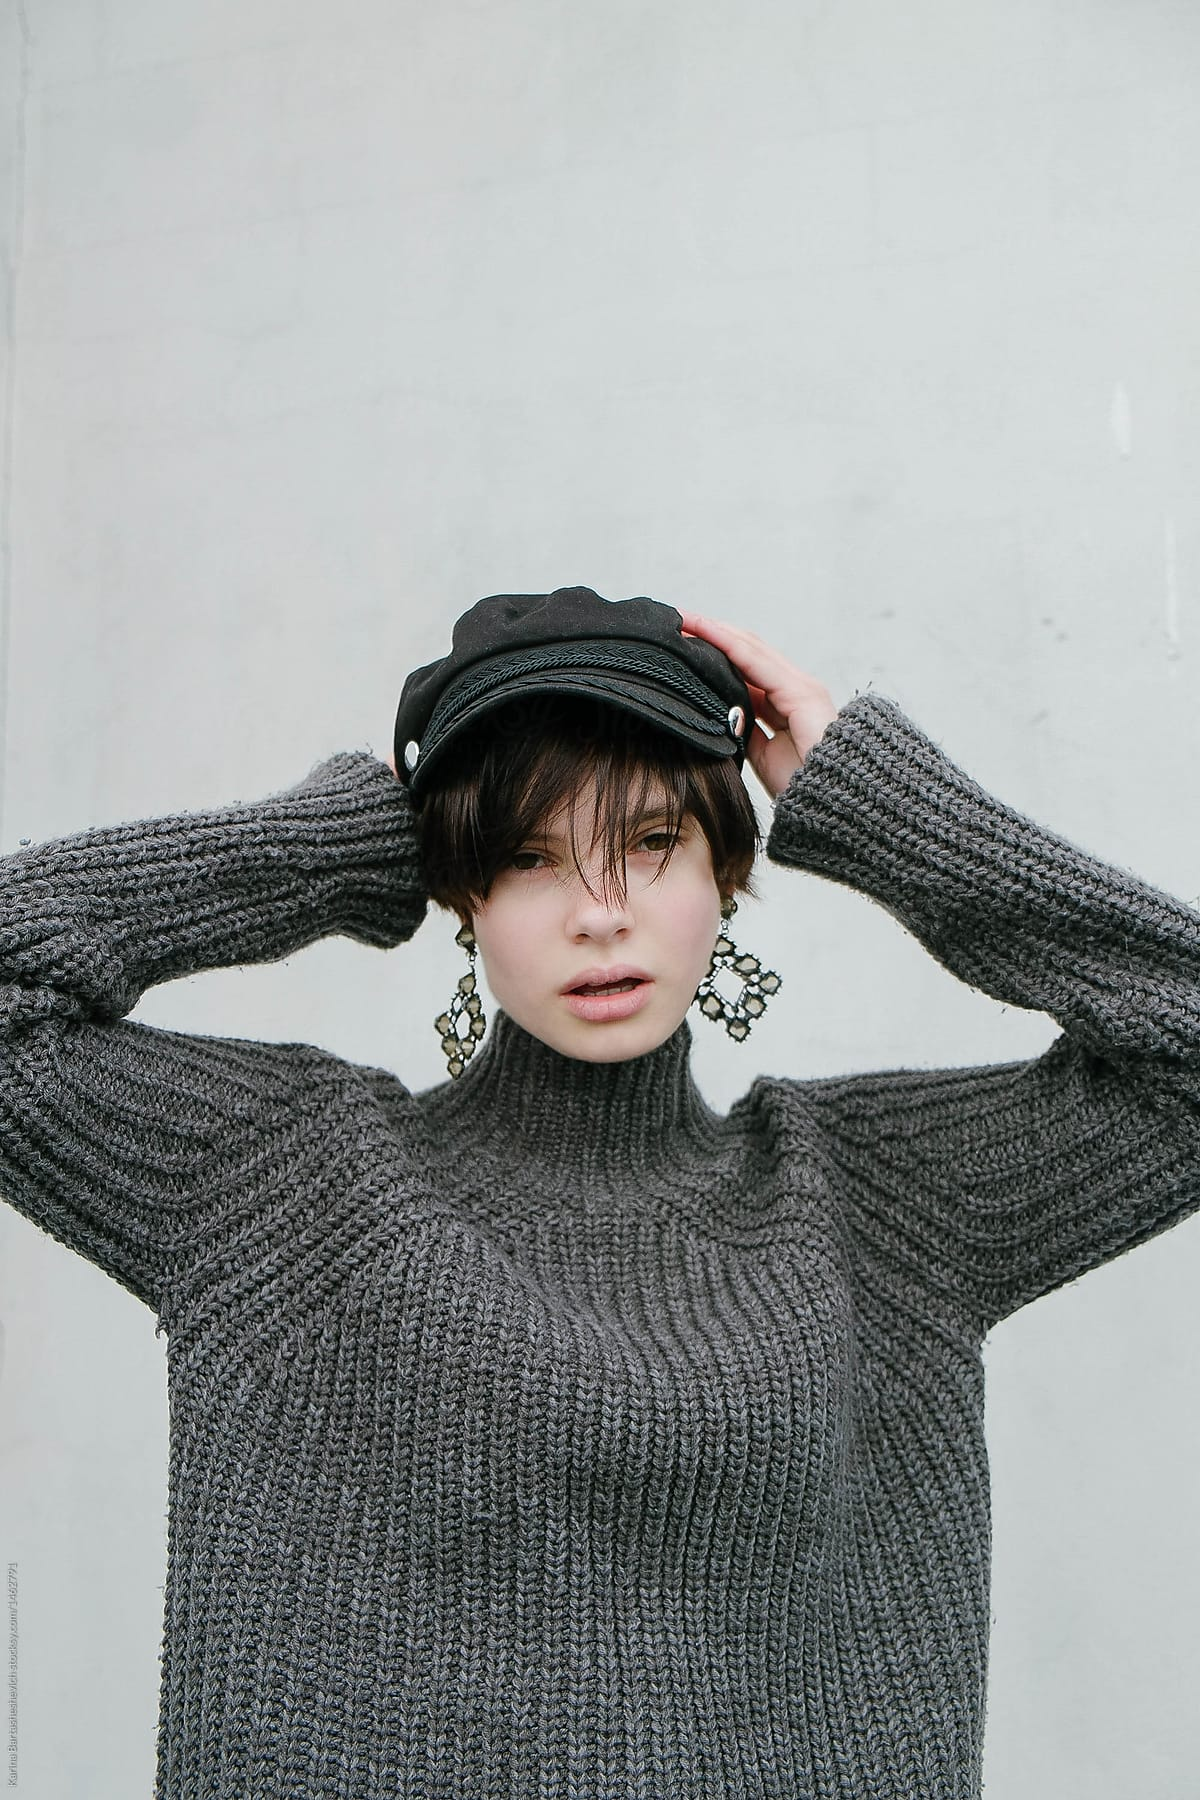 sophisticated young fashion girl with short hair with the hat with earrings f59c52e1ccb